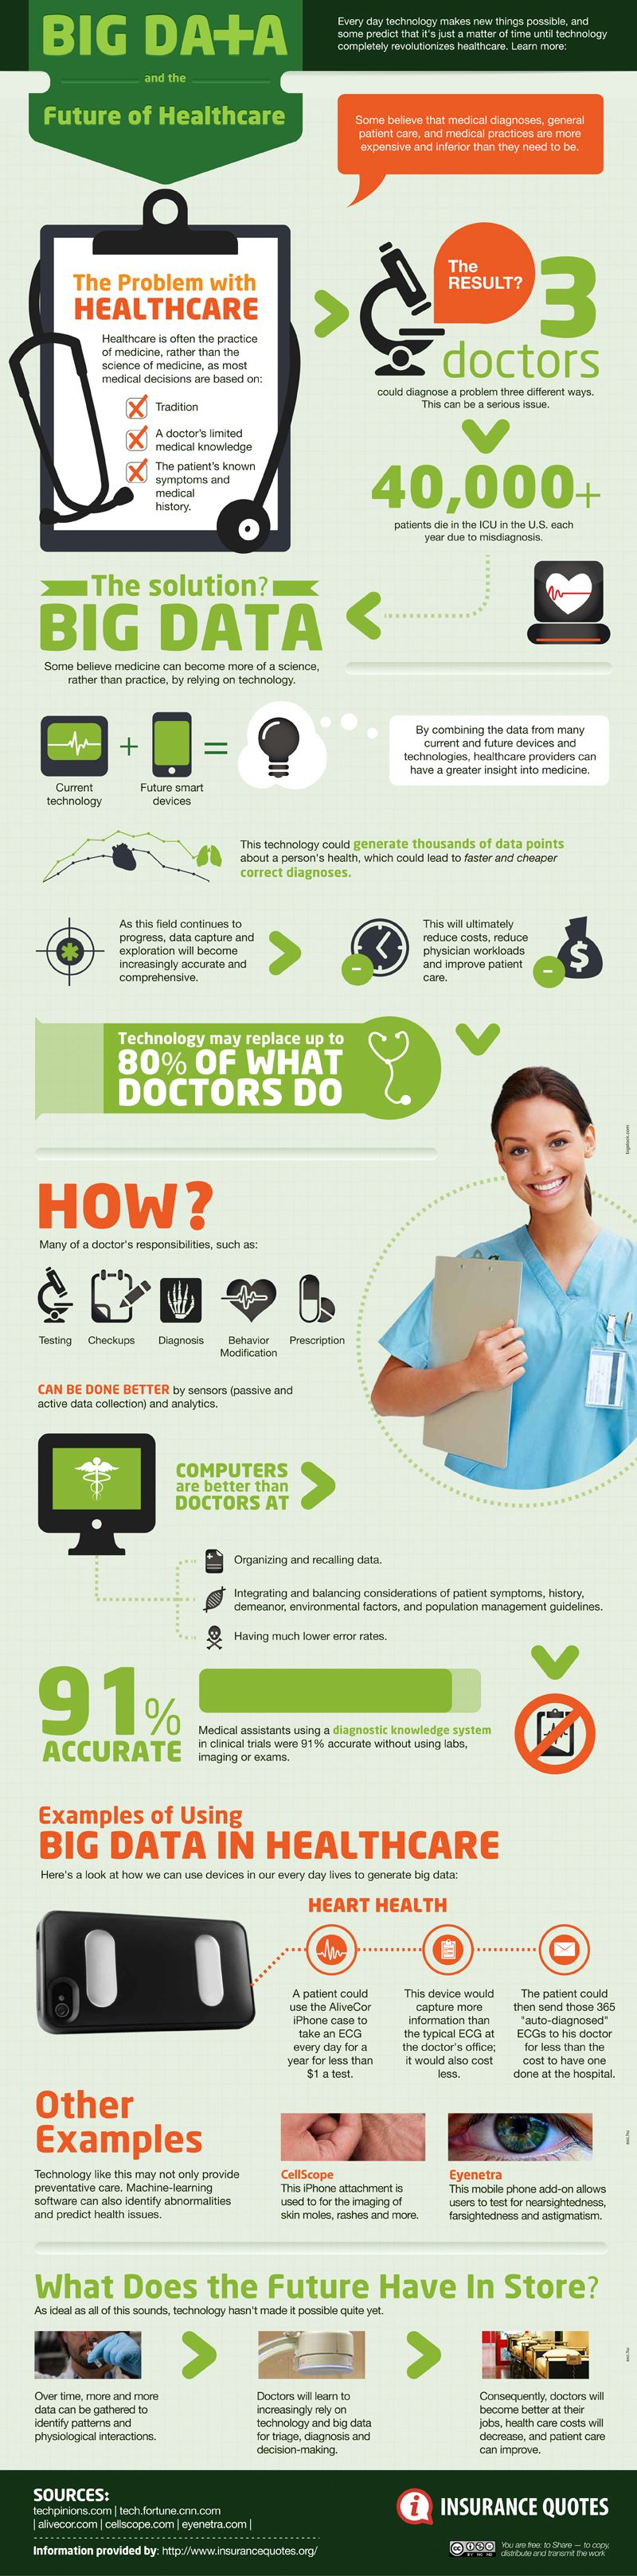 Big Data and the Future of Healthcare